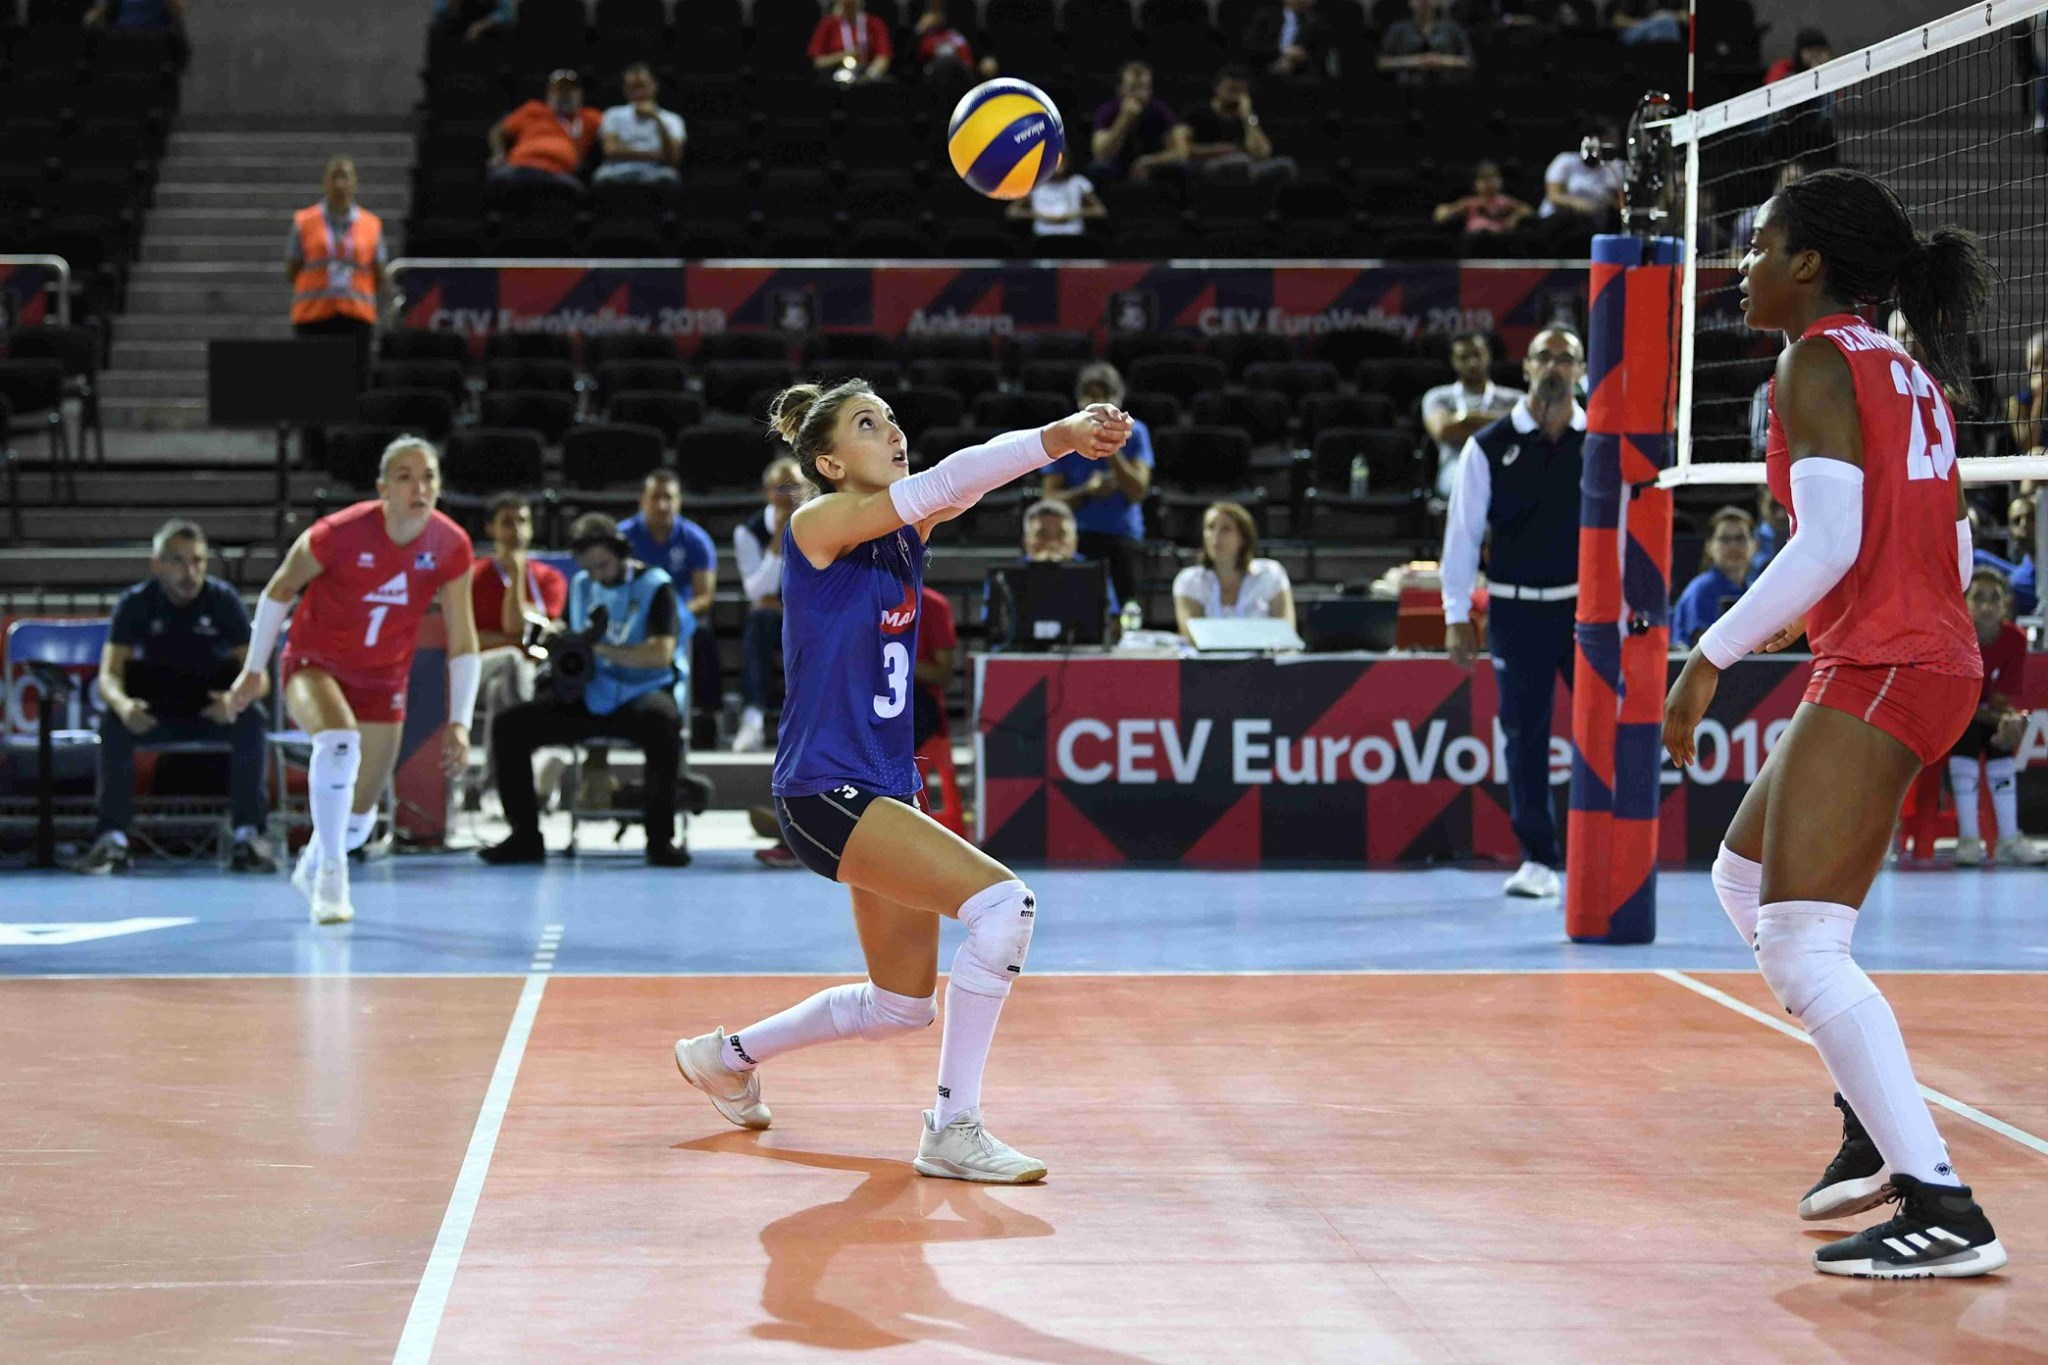 pourquoi-un-joueur-a-un-maillot-different-au-volley-le-libero-2